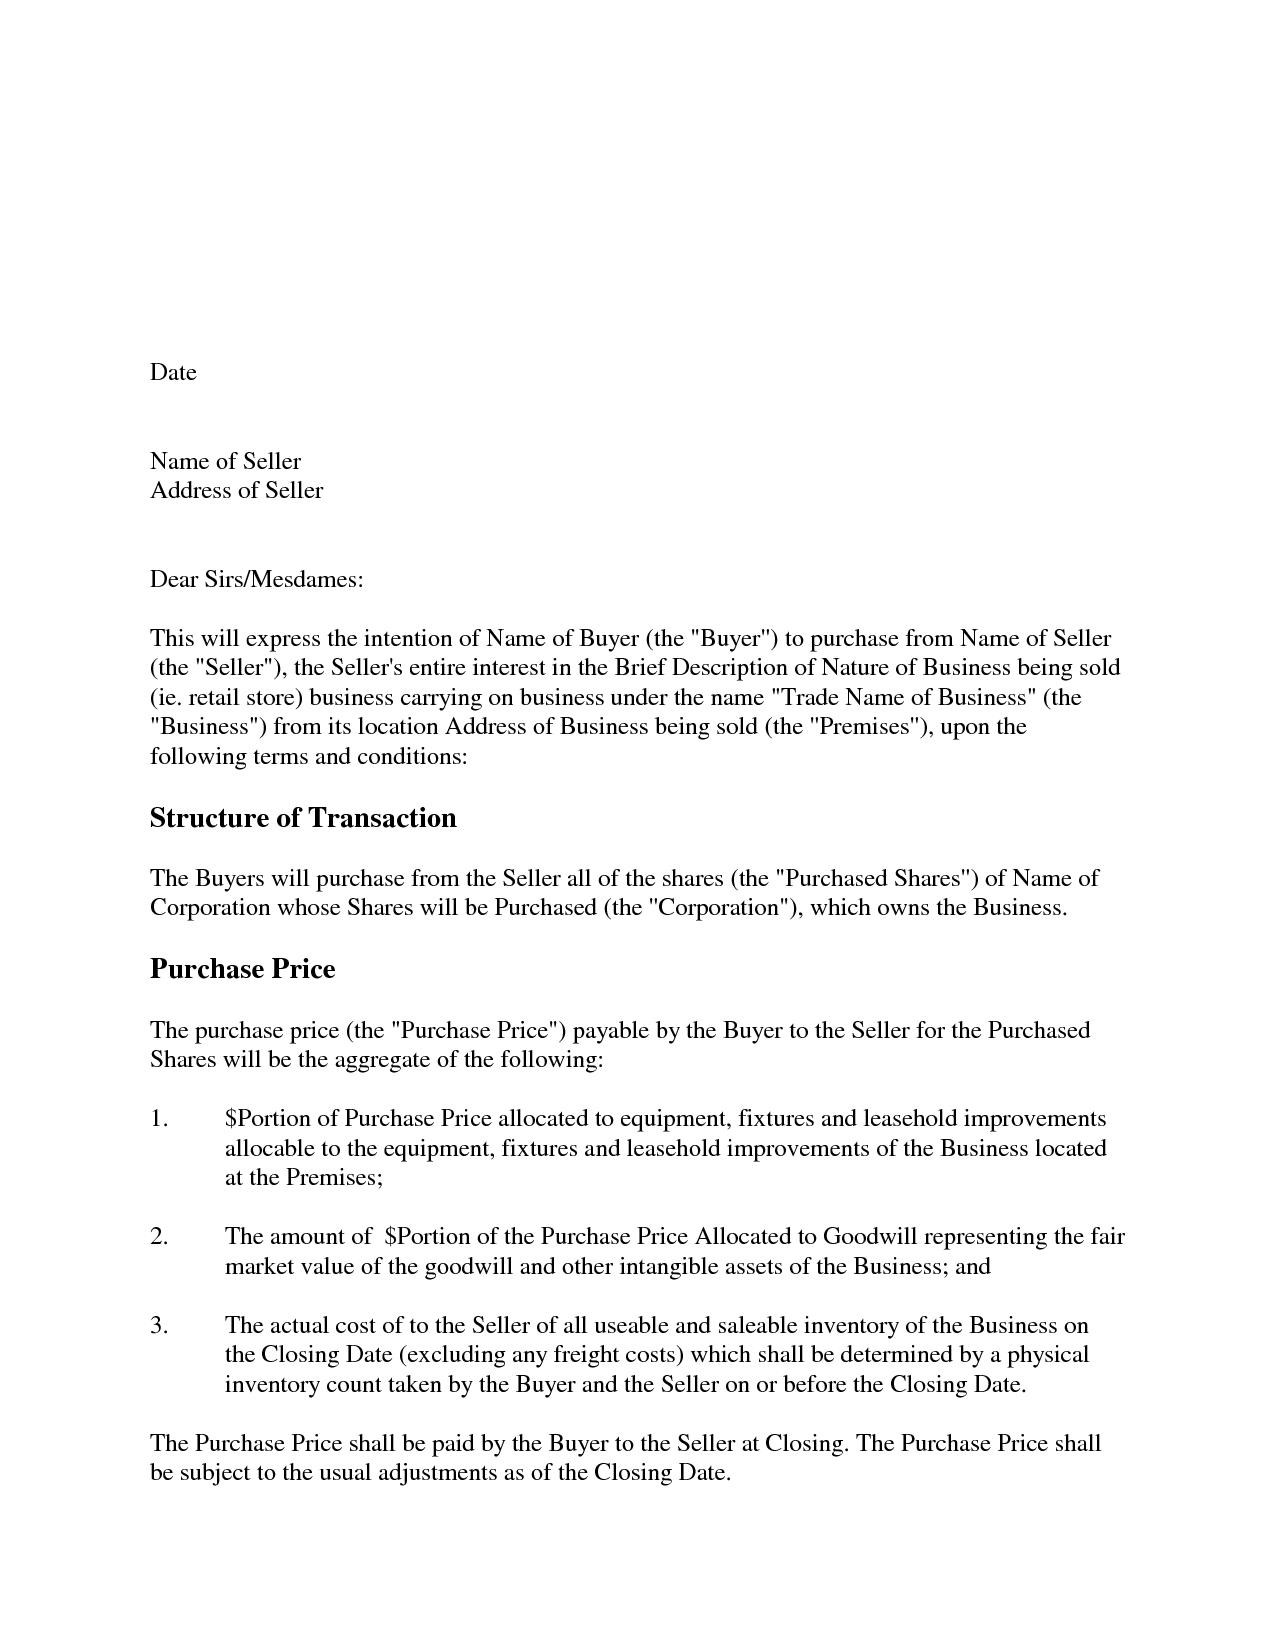 Letter of intent to purchase shares template examples for Letter of intent to buy a business template